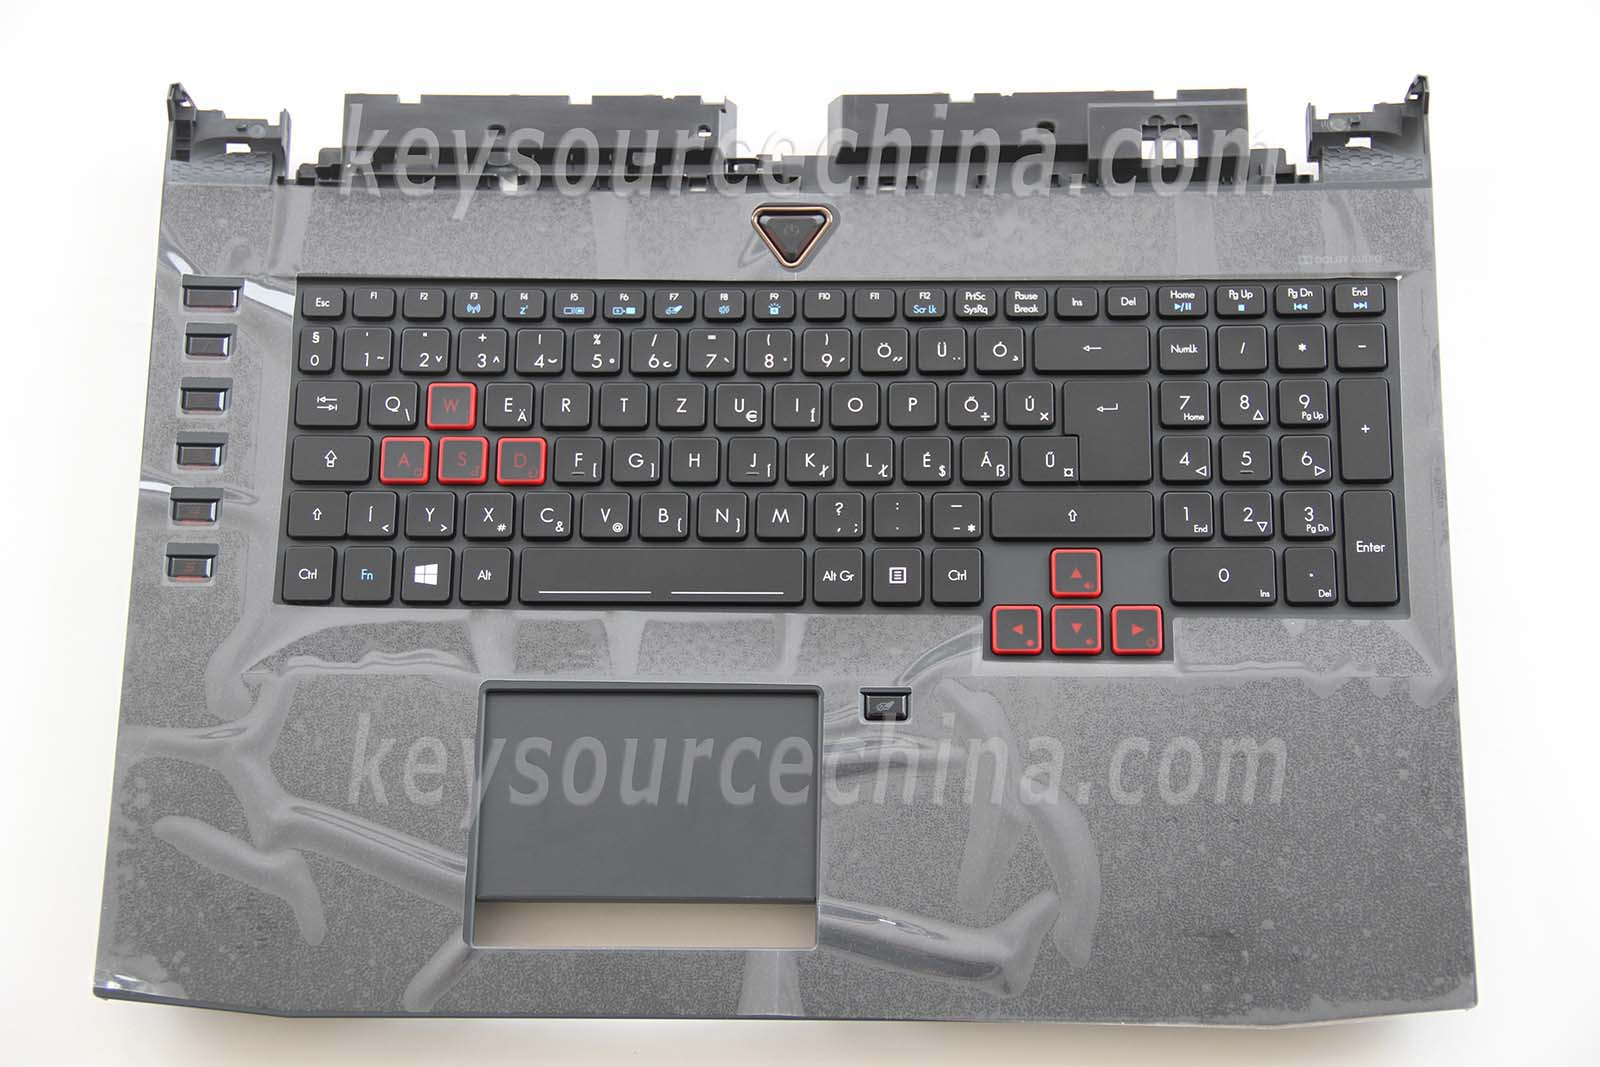 NKI151301G Magyar Billentyűzet for Acer Predator 17 G9-791 Keyboard Hungaian Backlit Top case with touch pad